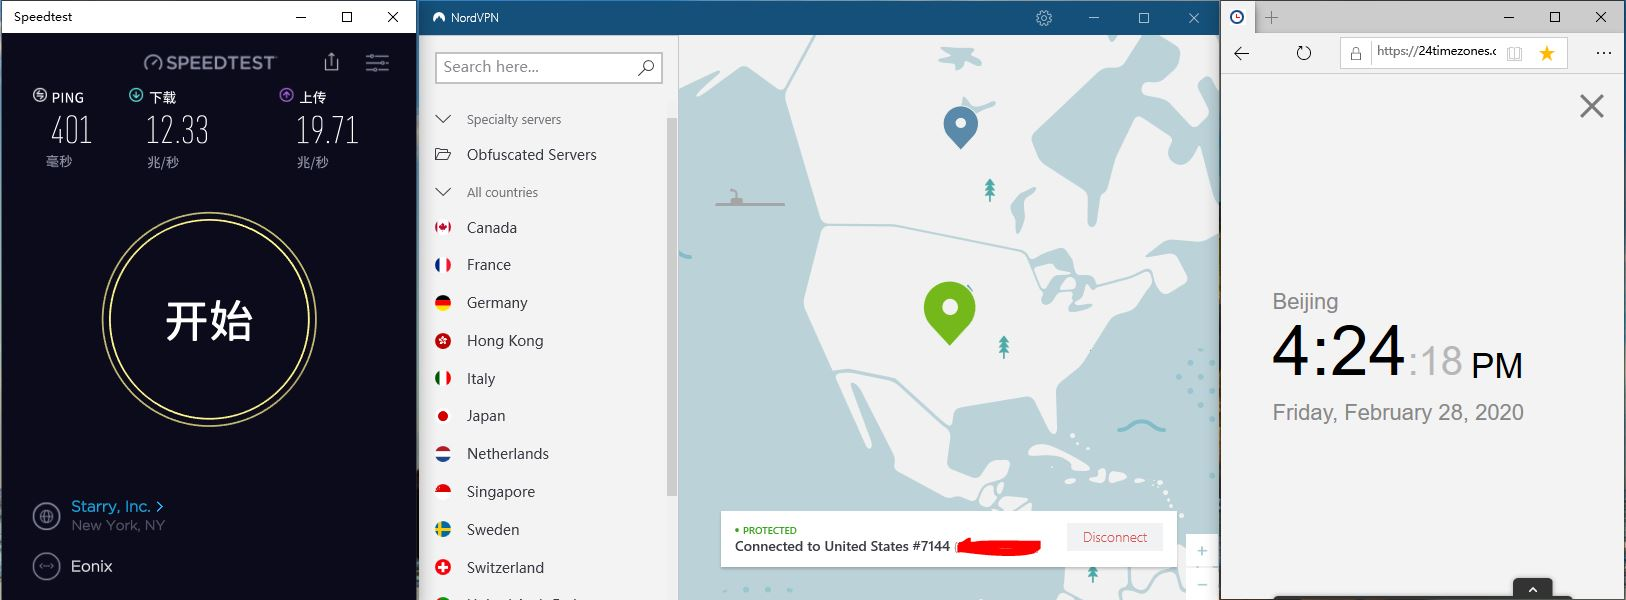 Windows10 NordVPN United States #7144 中国VPN翻墙 科学上网 SpeedTest测速 - 20200228